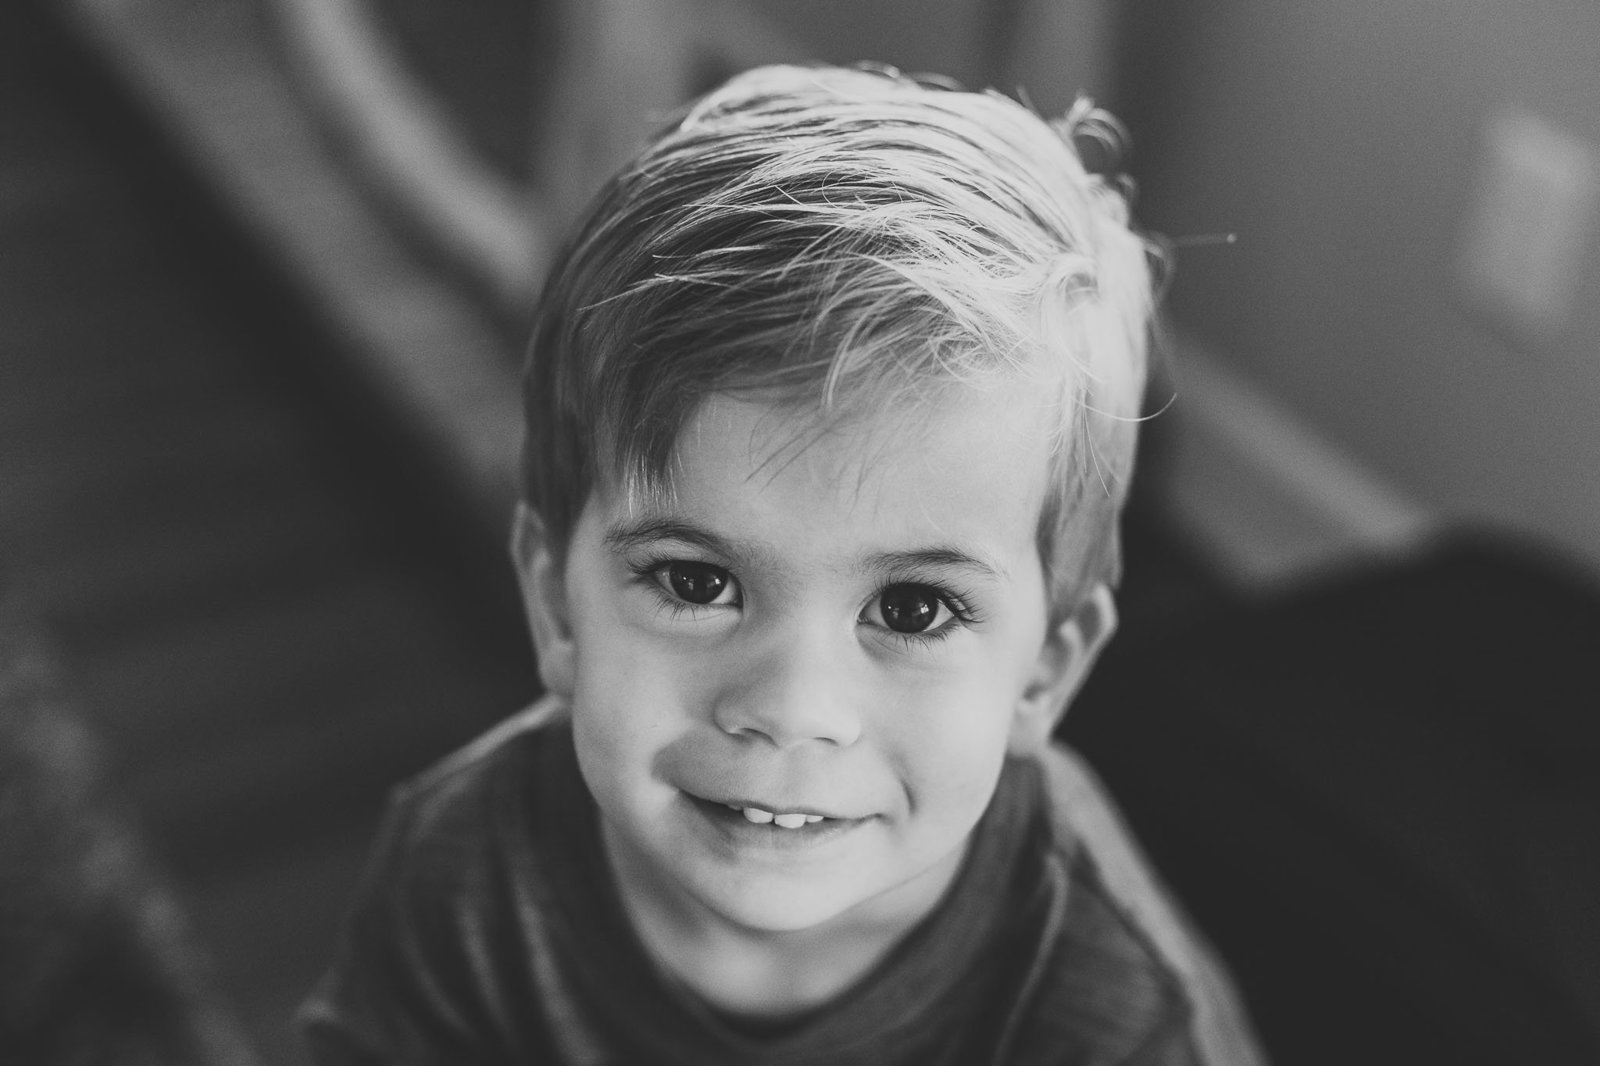 Oahu, Hawaii Lifestyle Photographer - Lifestyle Photography - Brooke Flanagan Photography - Little boy close up in black and white